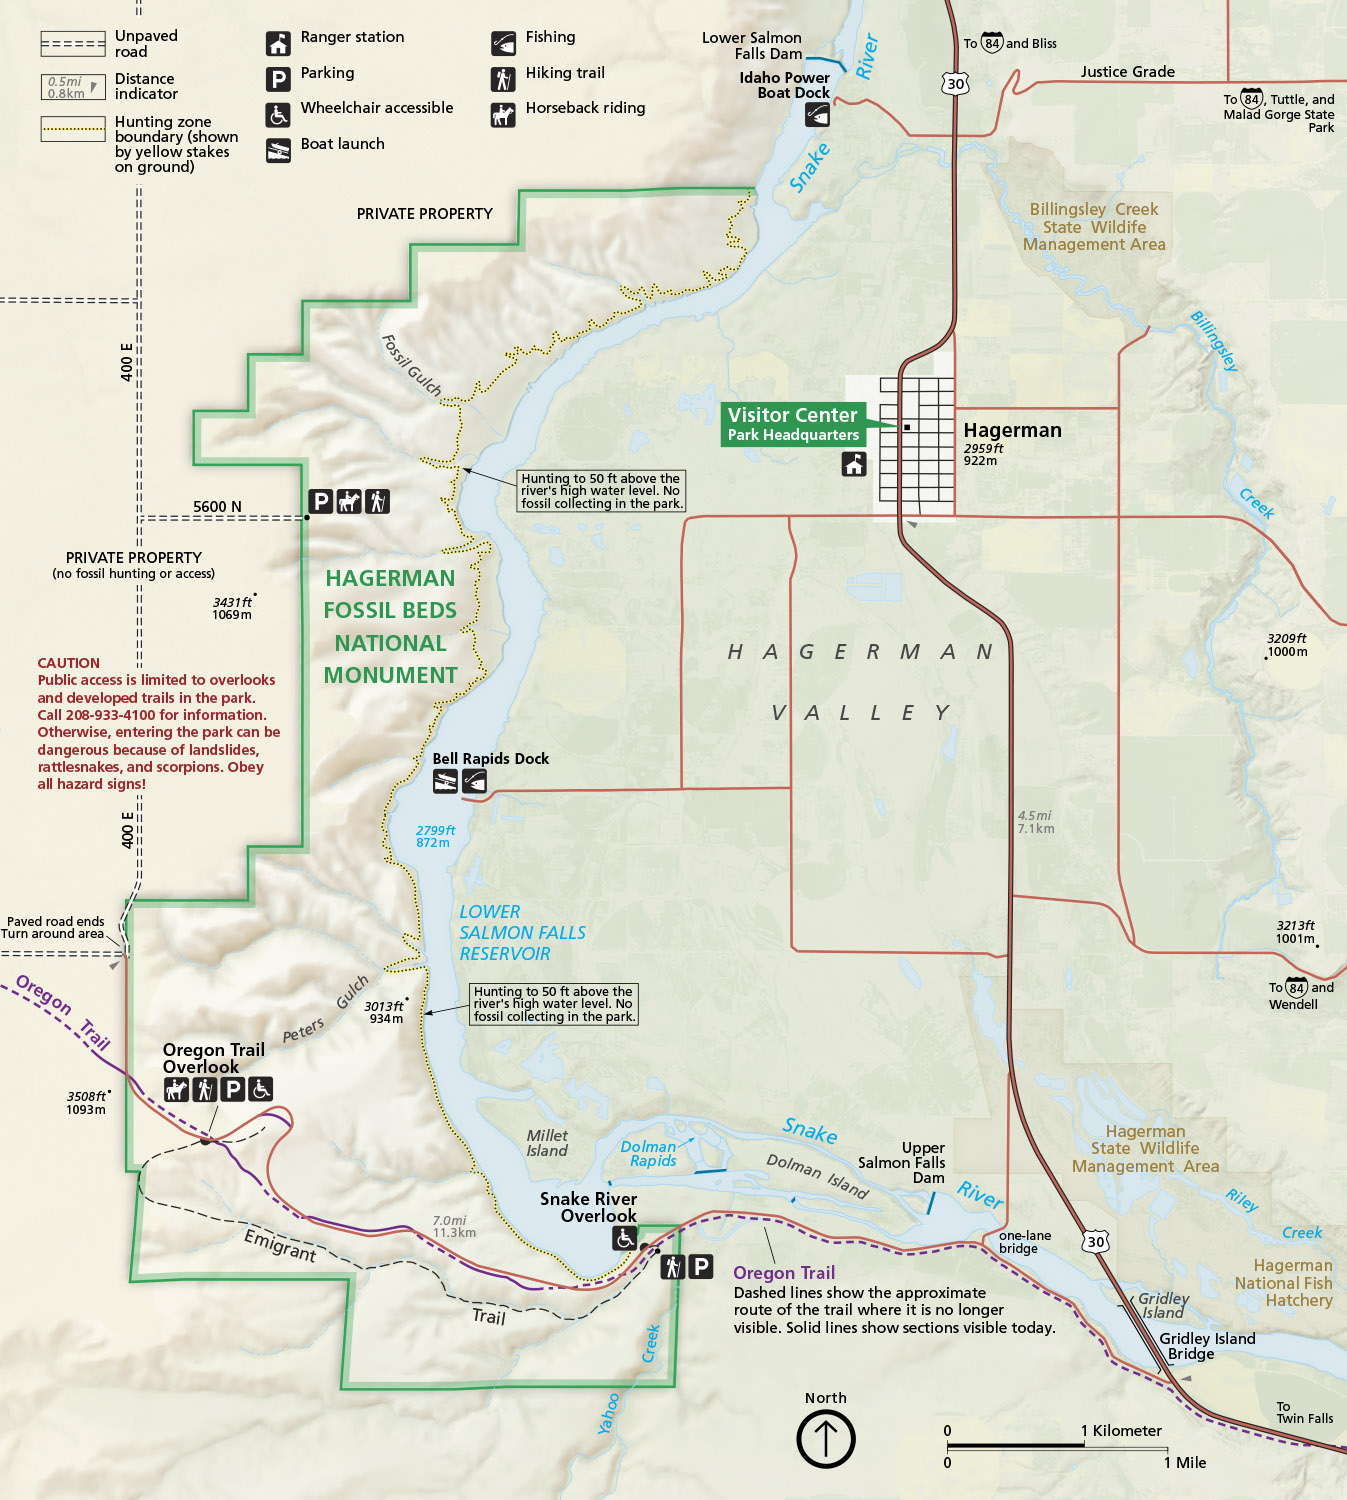 Hagerman Idaho Map.Hagerman Fossil Beds National Monument Us National Park Service